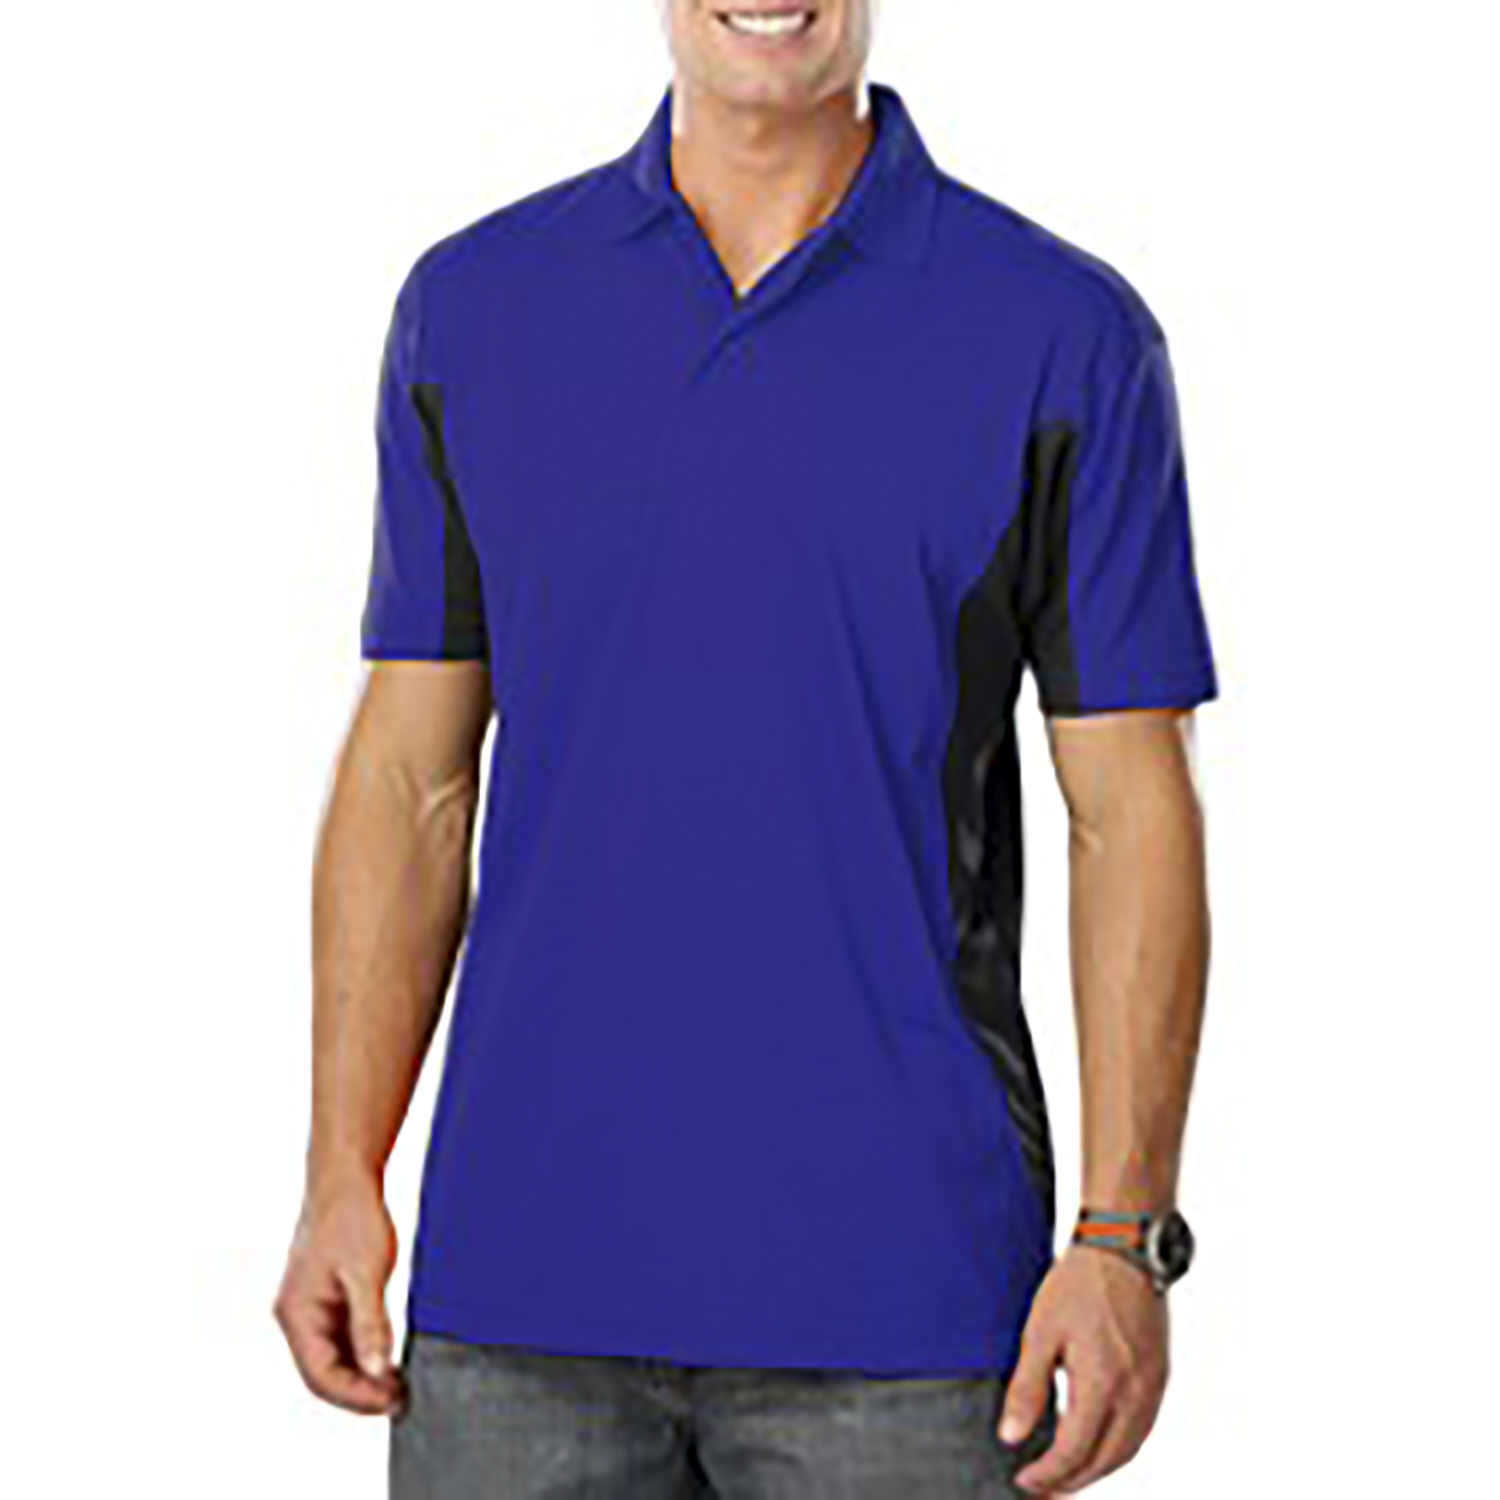 Blue Generation Men's Snag Resist Wicking Colorblock Polo